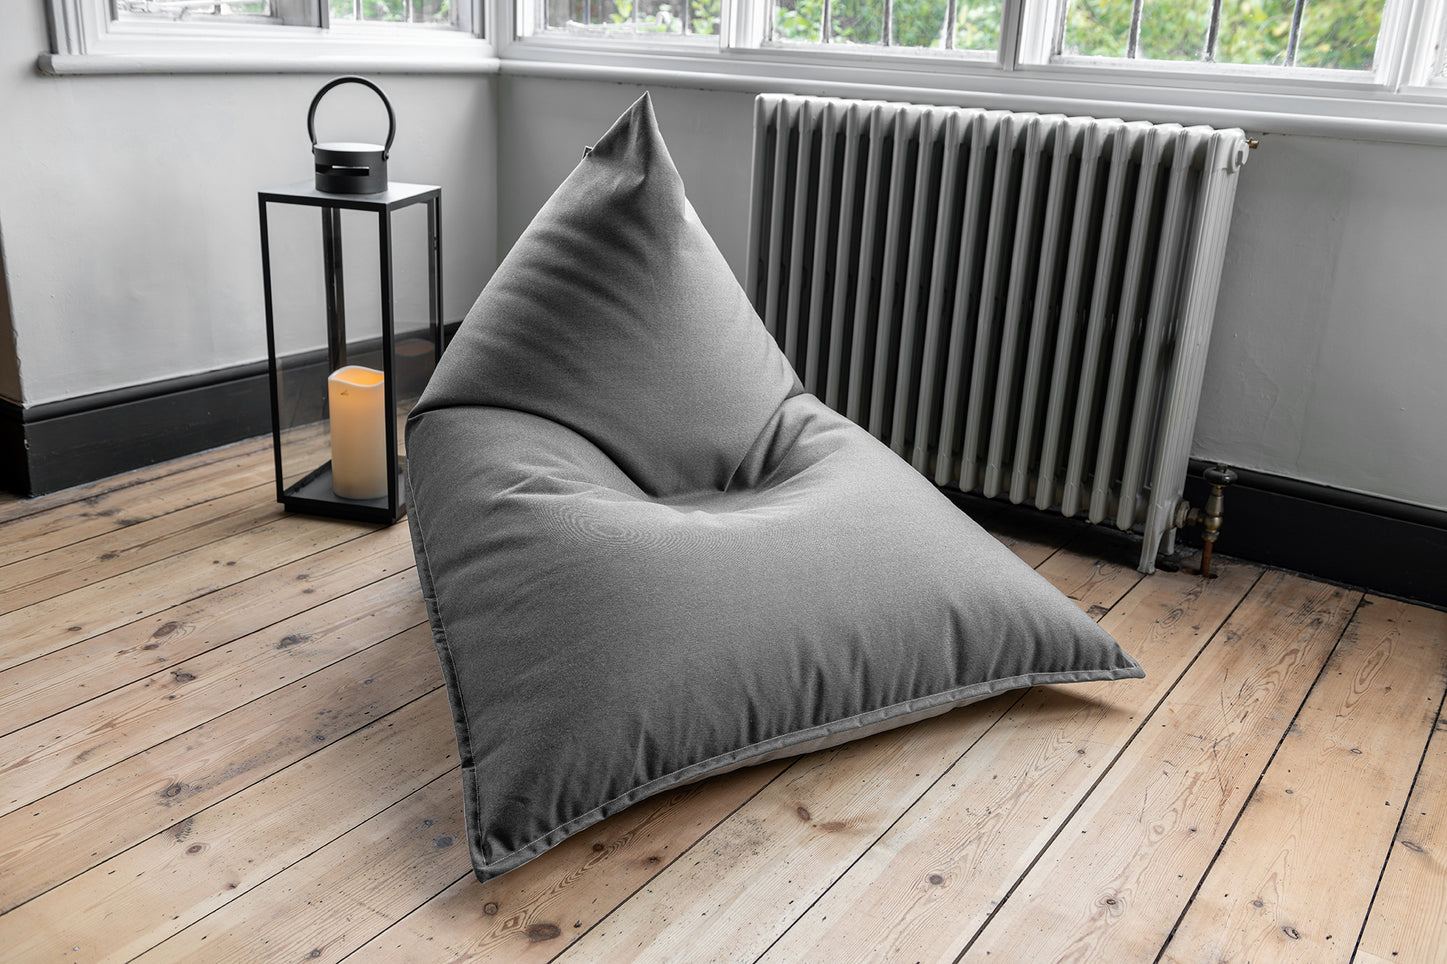 Adult Bean Bag Chair in Charcoal and Grey